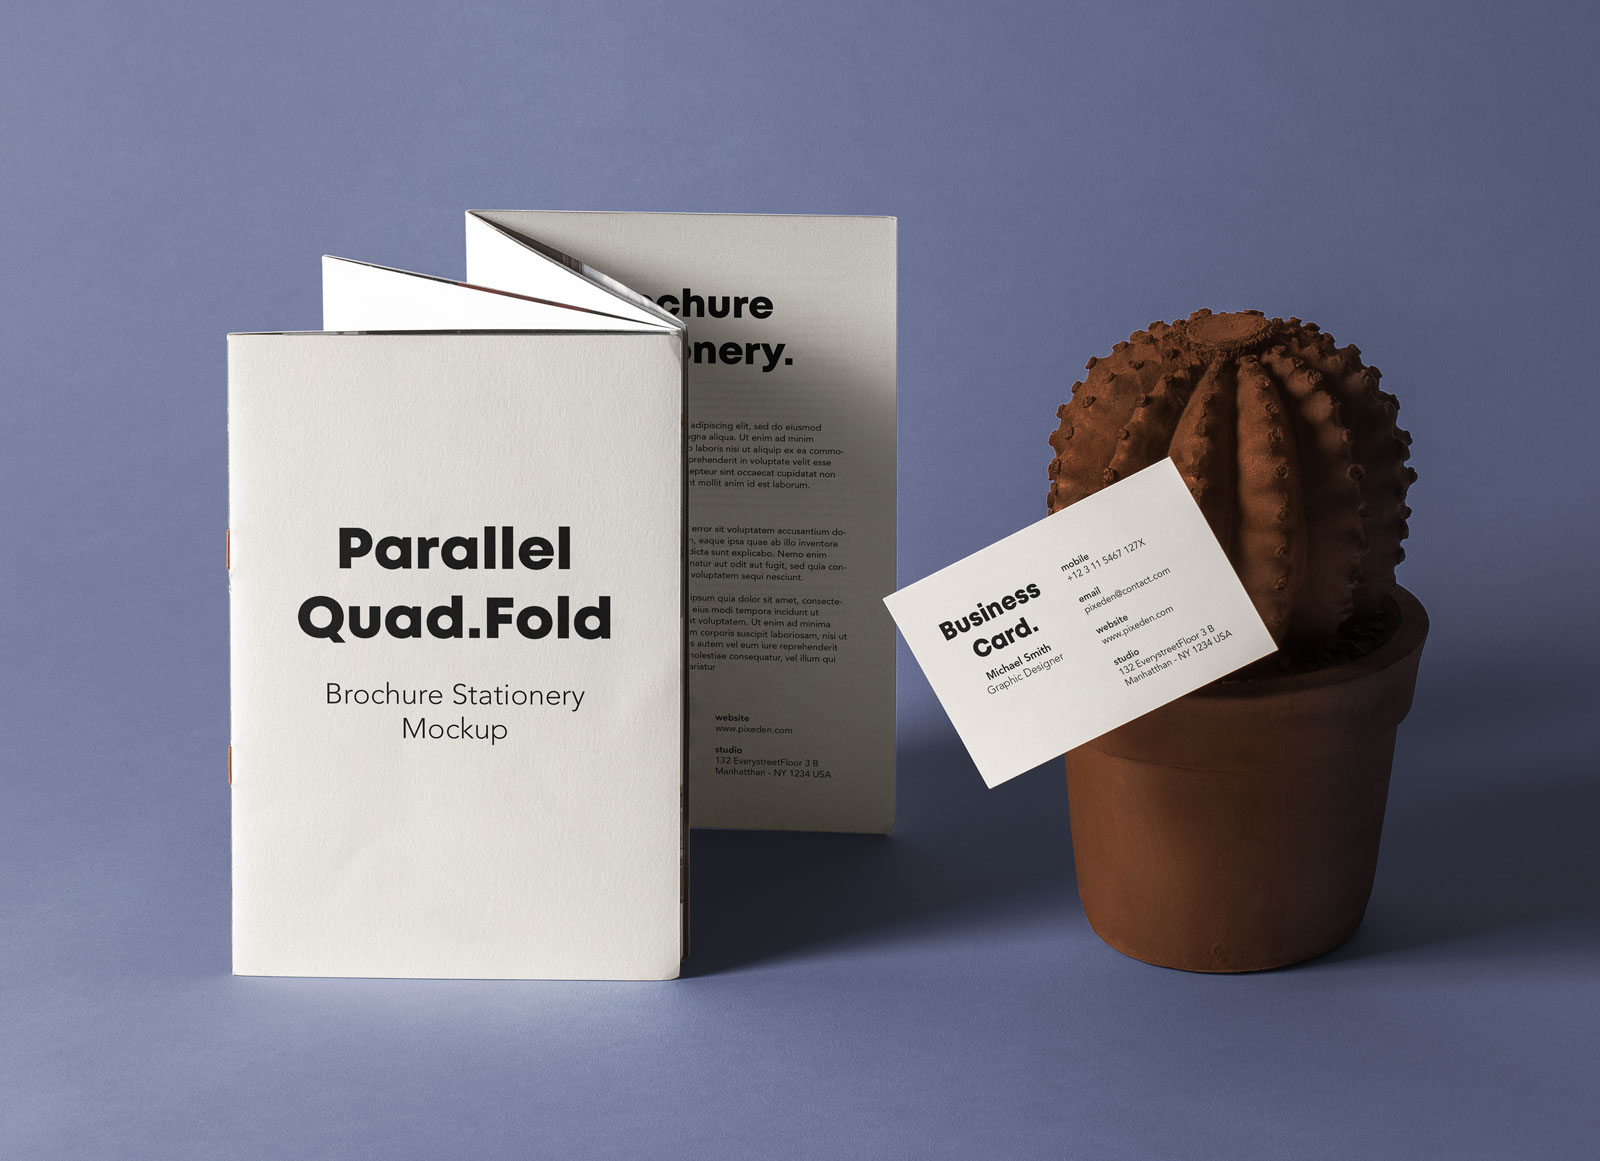 Free-Quad-Fold-Brochure-&-Name-Card-Mockup-PSD